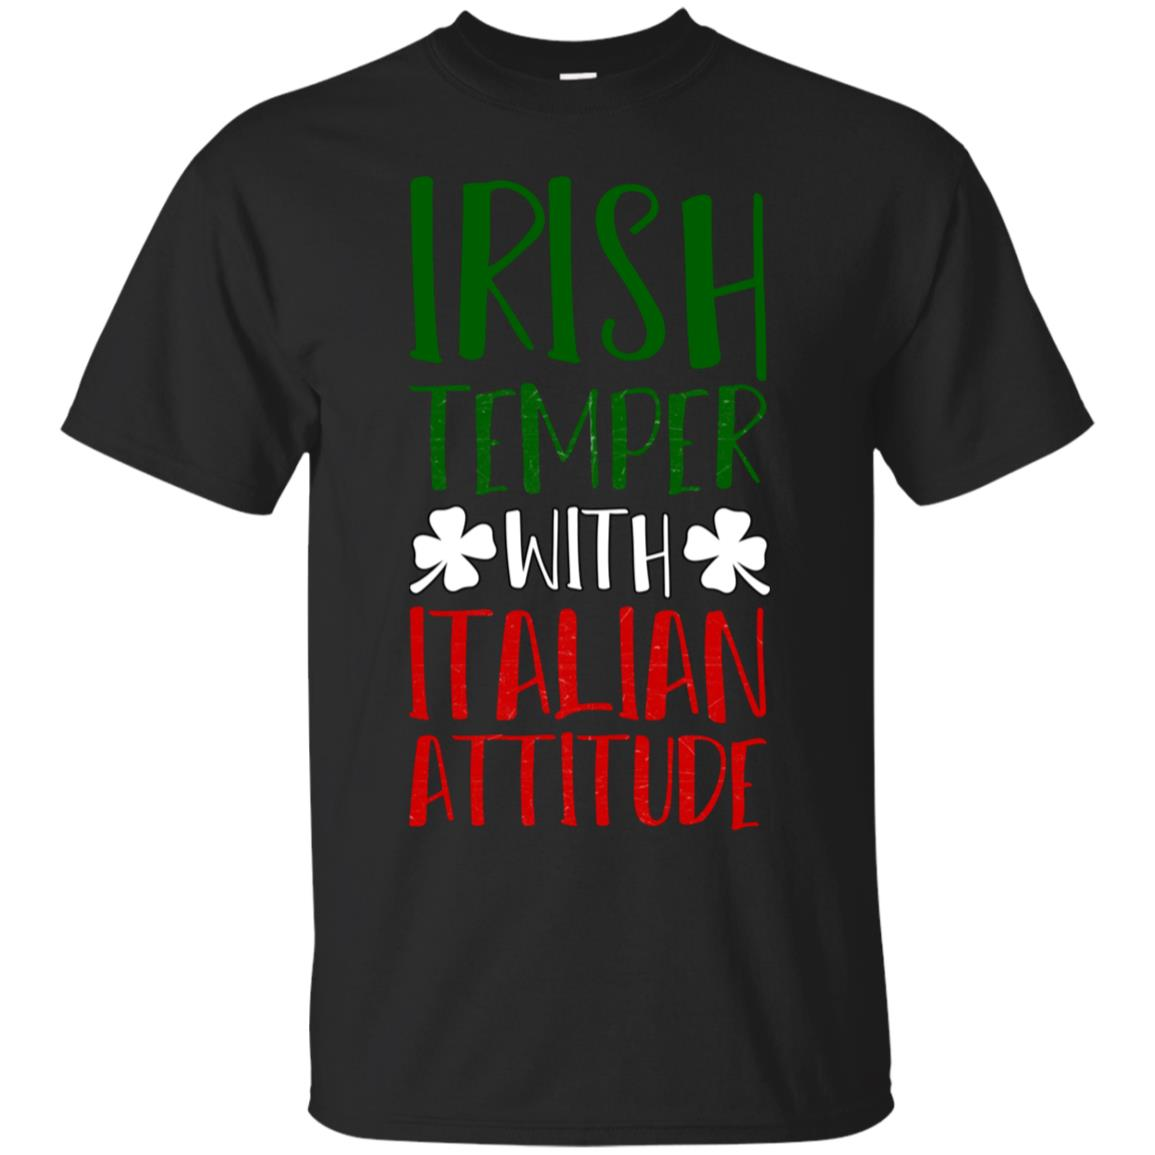 St. Patricks Day T-Shirt Irish Temper With Italian Attitude 99promocode